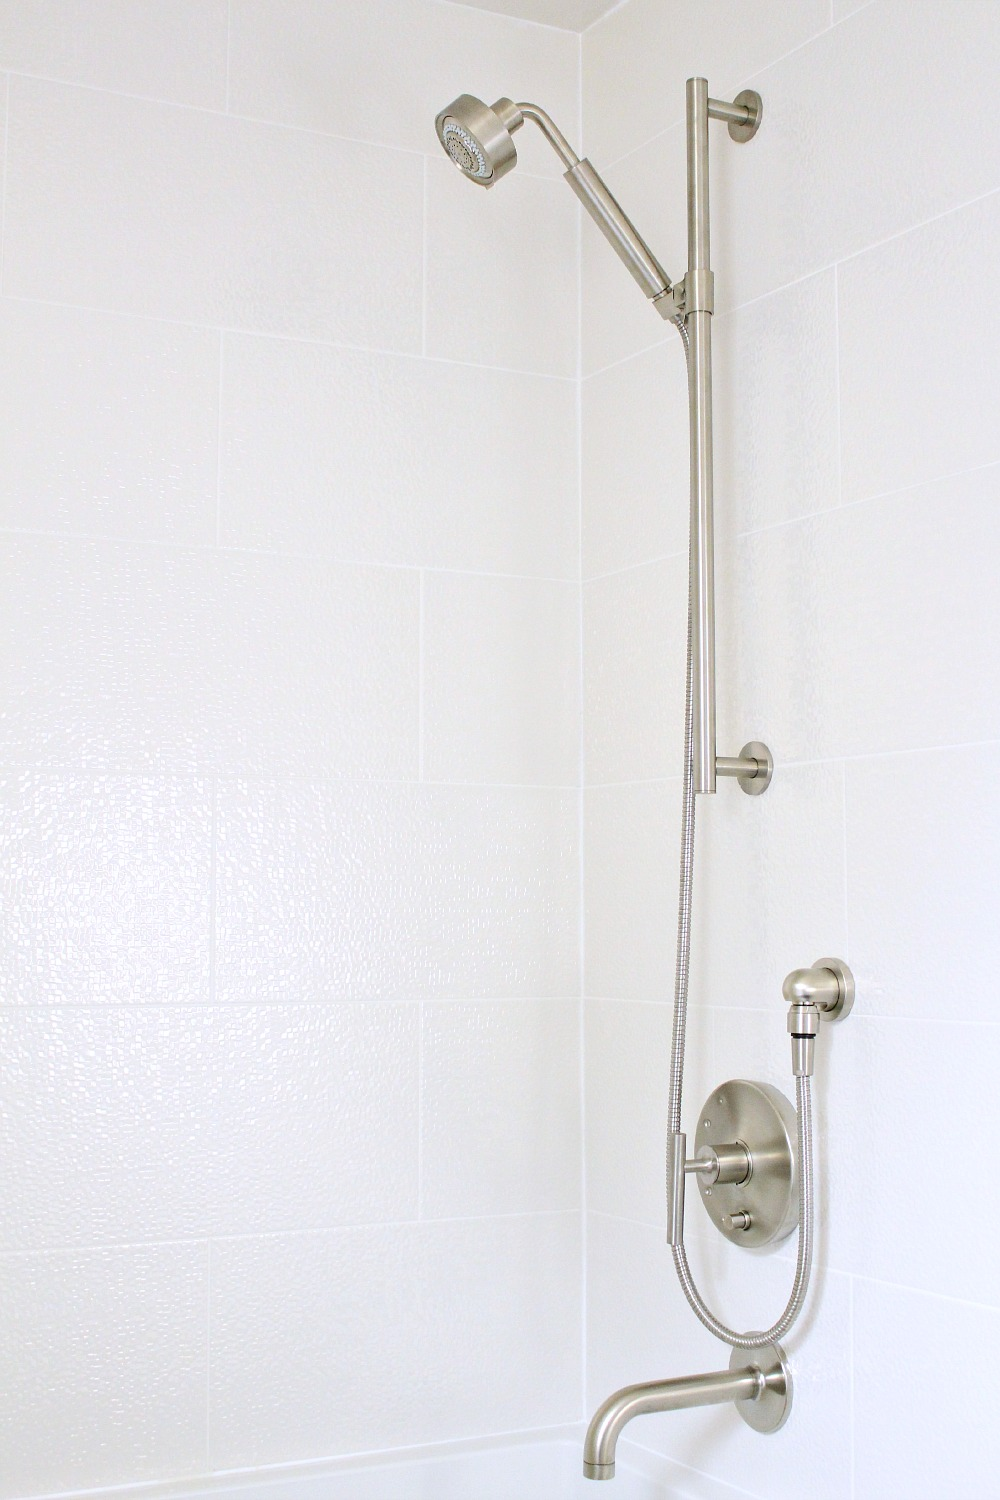 Kohler Purist Hand Held Shower